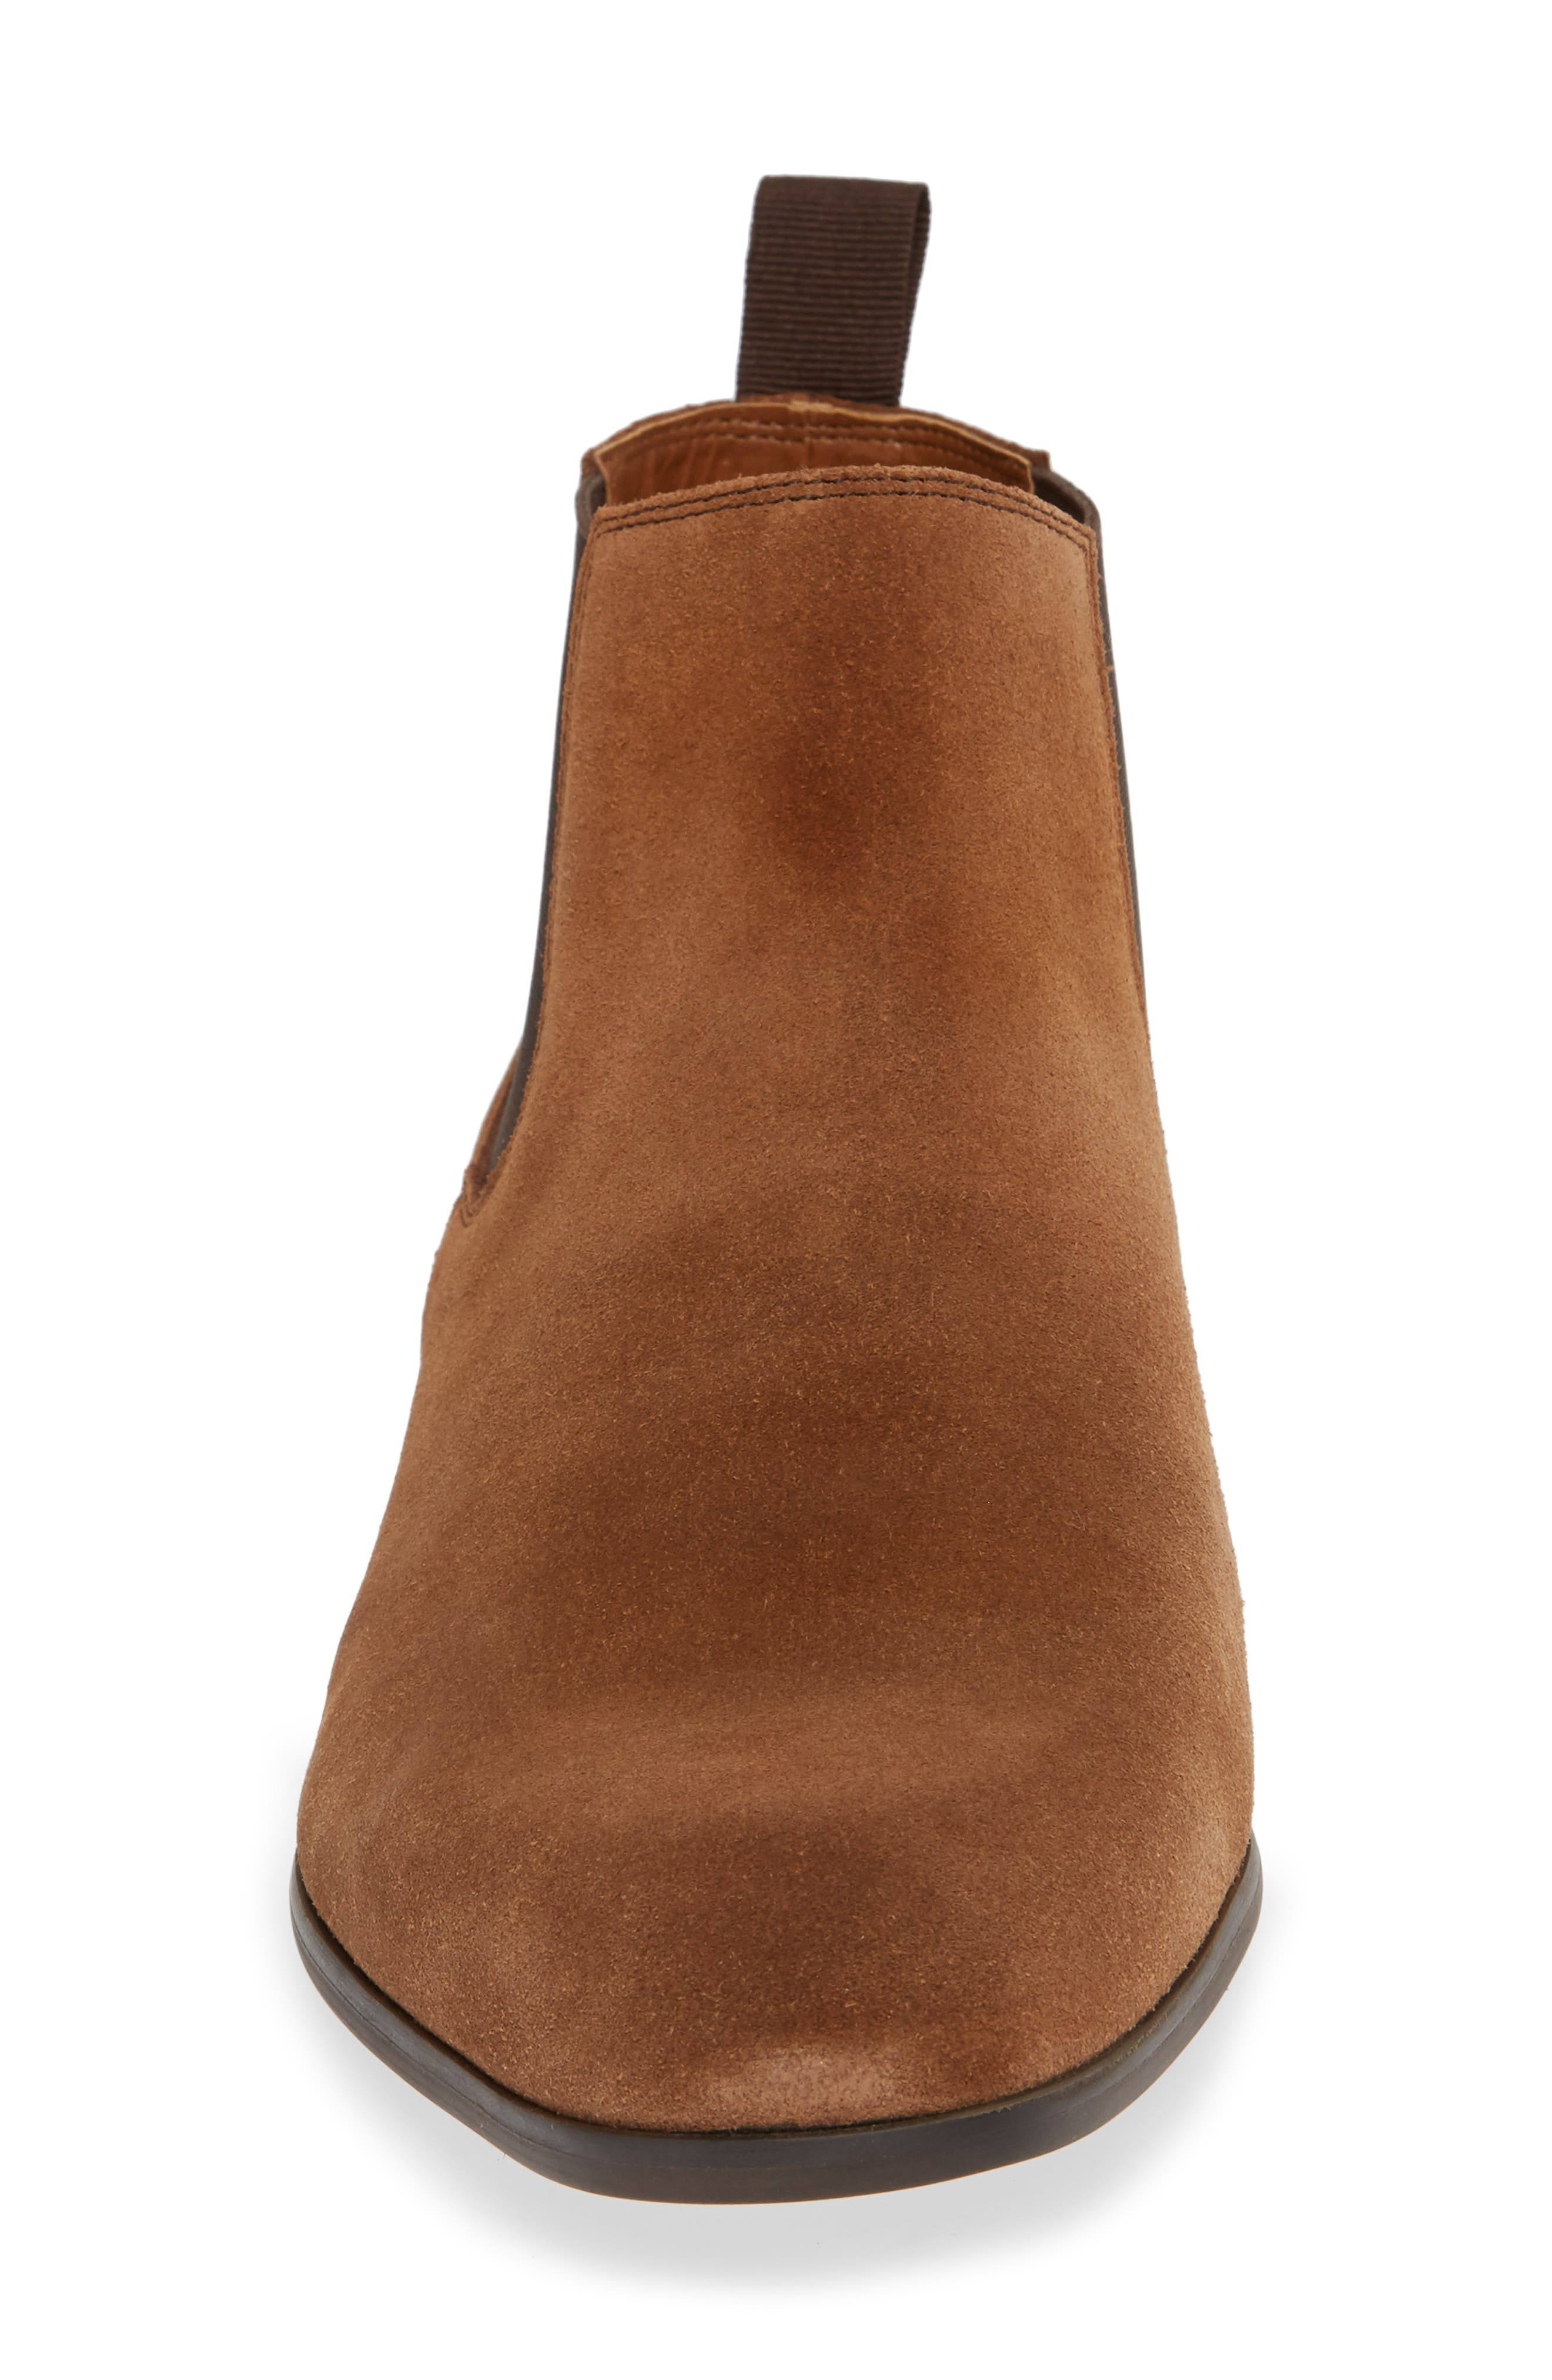 Edward Chelsea Boot,                             Alternate thumbnail 4, color,                             CHESTNUT SUEDE